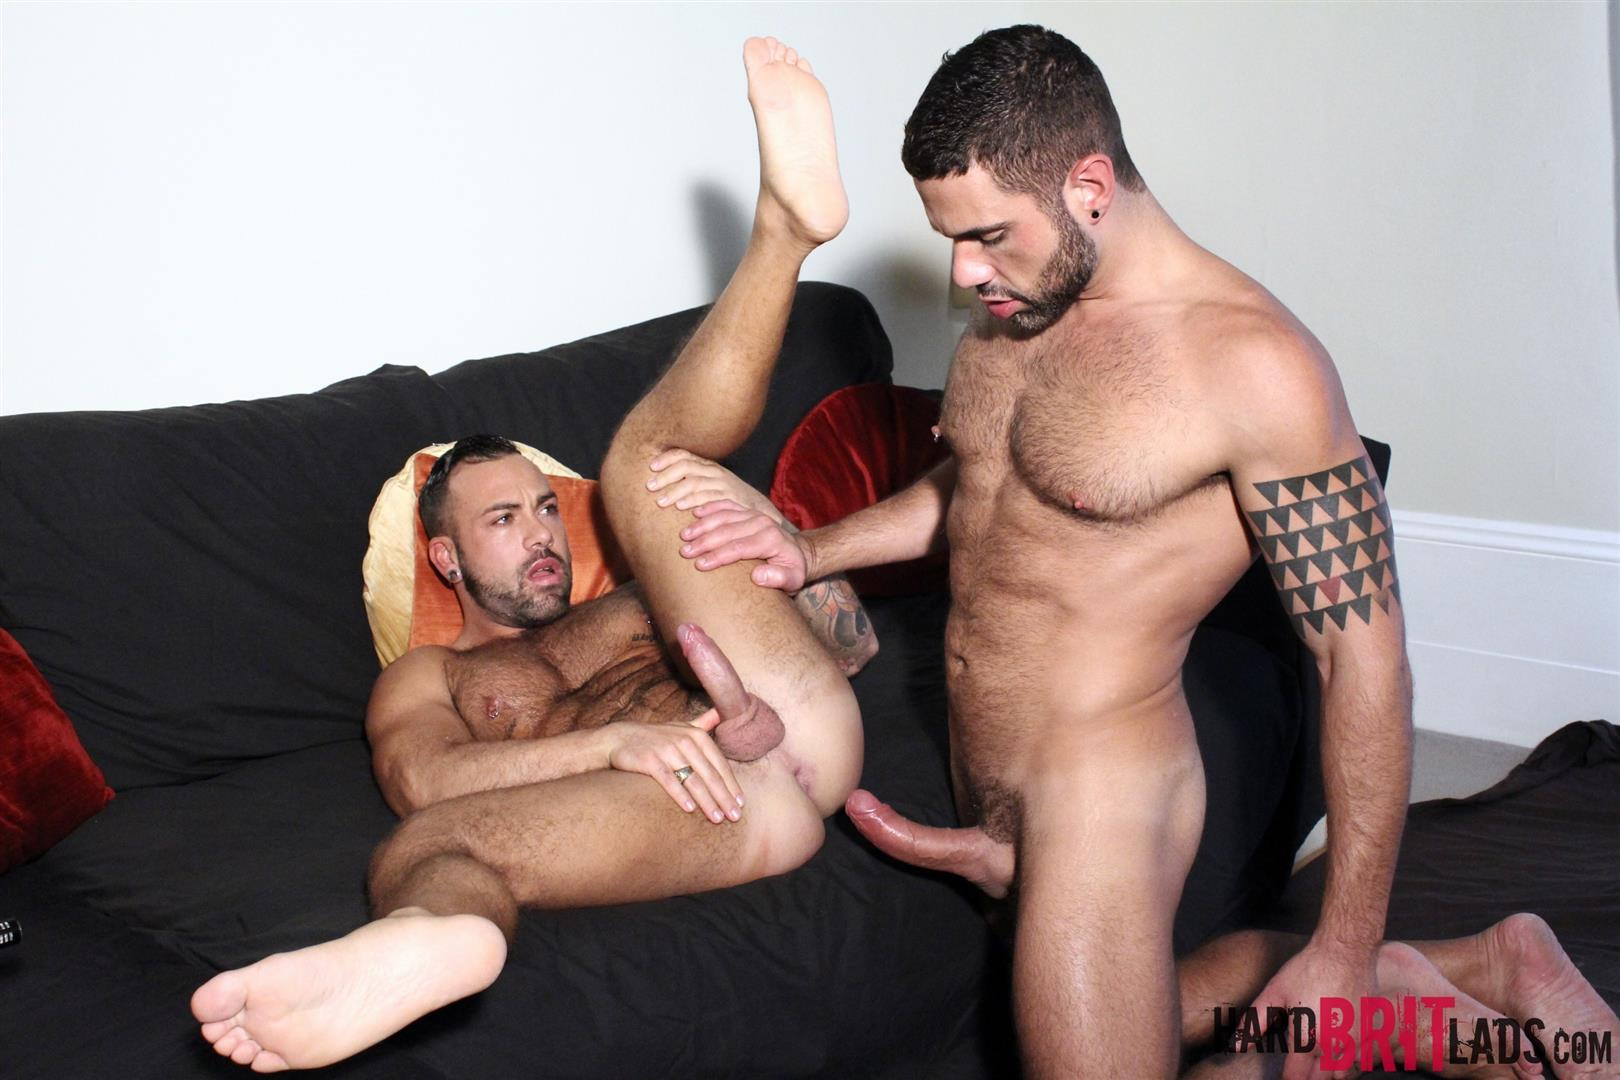 Hard-Brit-Lads-Sergi-Rodriguez-and-Letterio-Amadeo-Big-Uncut-Cock-Fucking-Amateur-Gay-Porn-13 Hairy British Muscle Hunks Fucking With Their Big Uncut Cocks